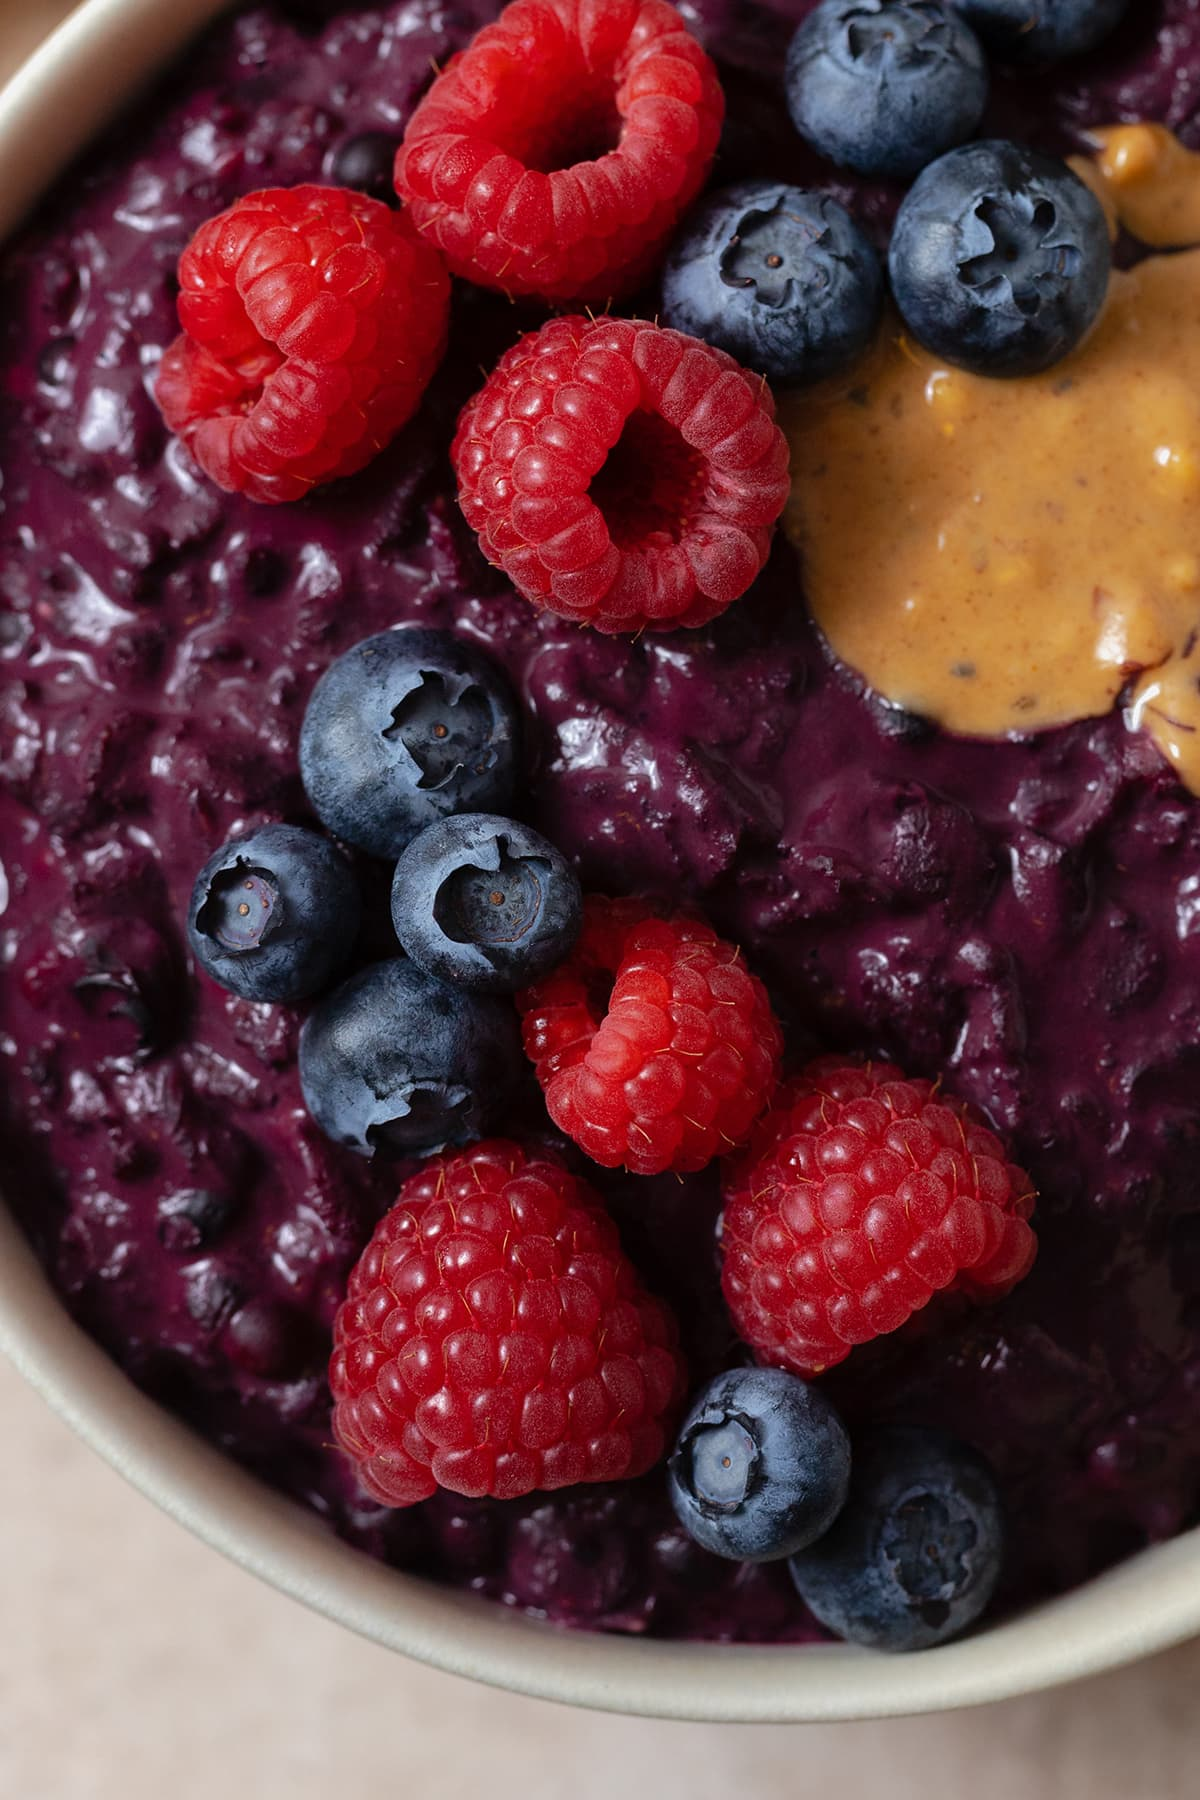 A close up of Maqui Berry oatmeal topped with berries and peanut butter.